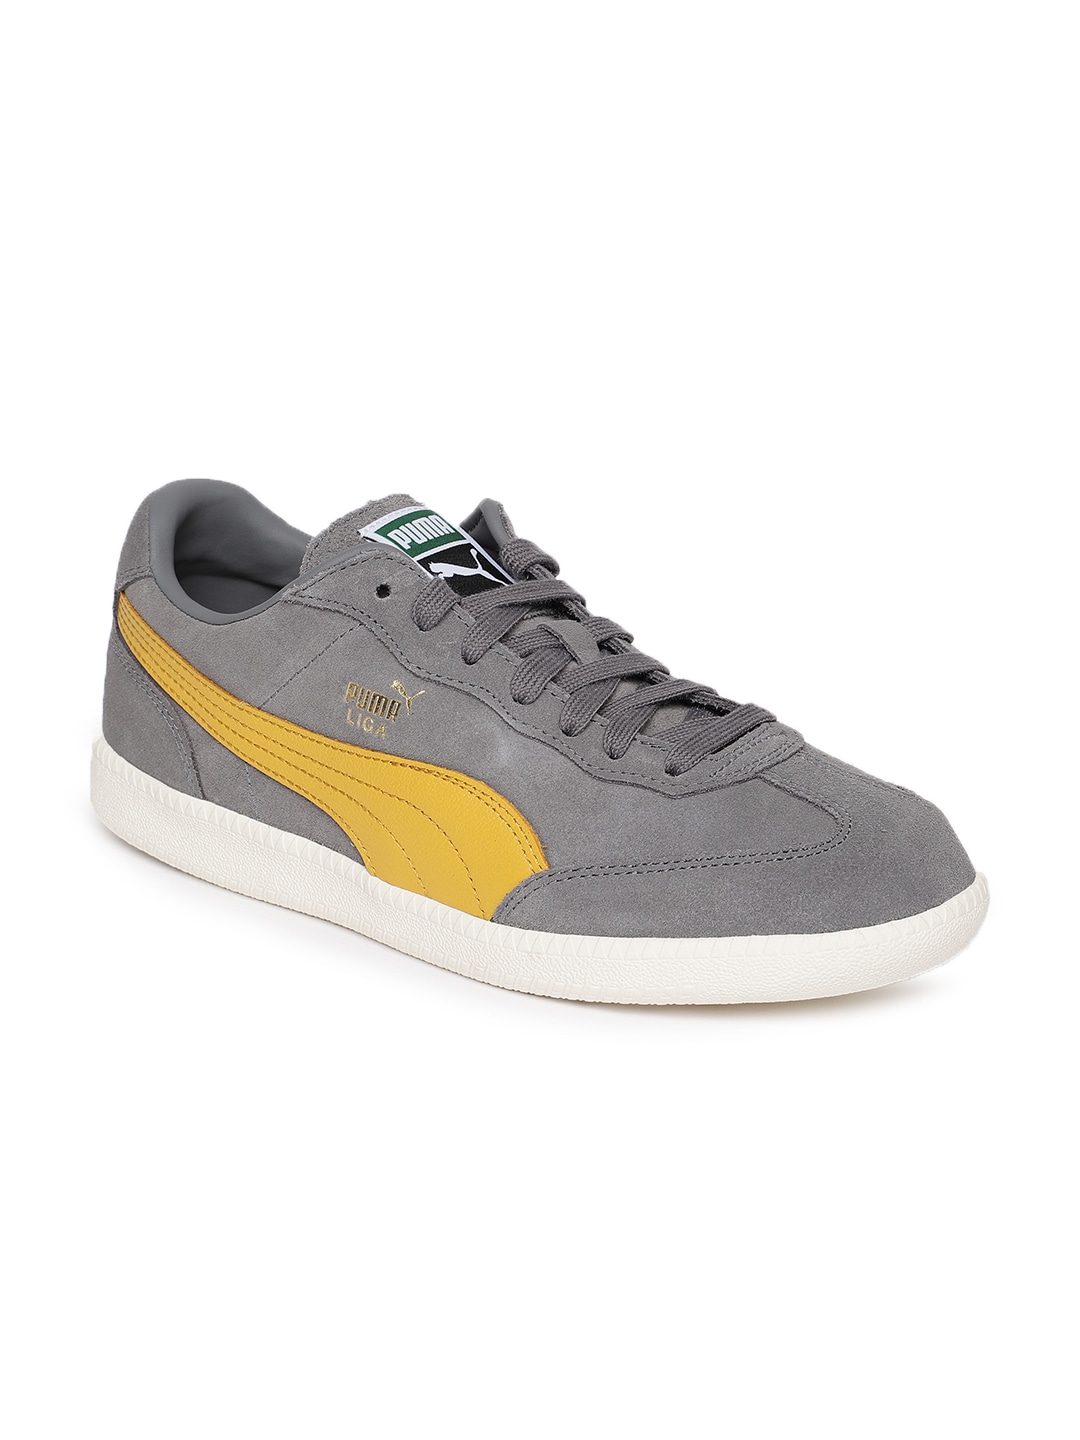 21a99f25828 Buy Puma Men Olive Green Astro Cup Suede Sneakers - Casual Shoes for ...